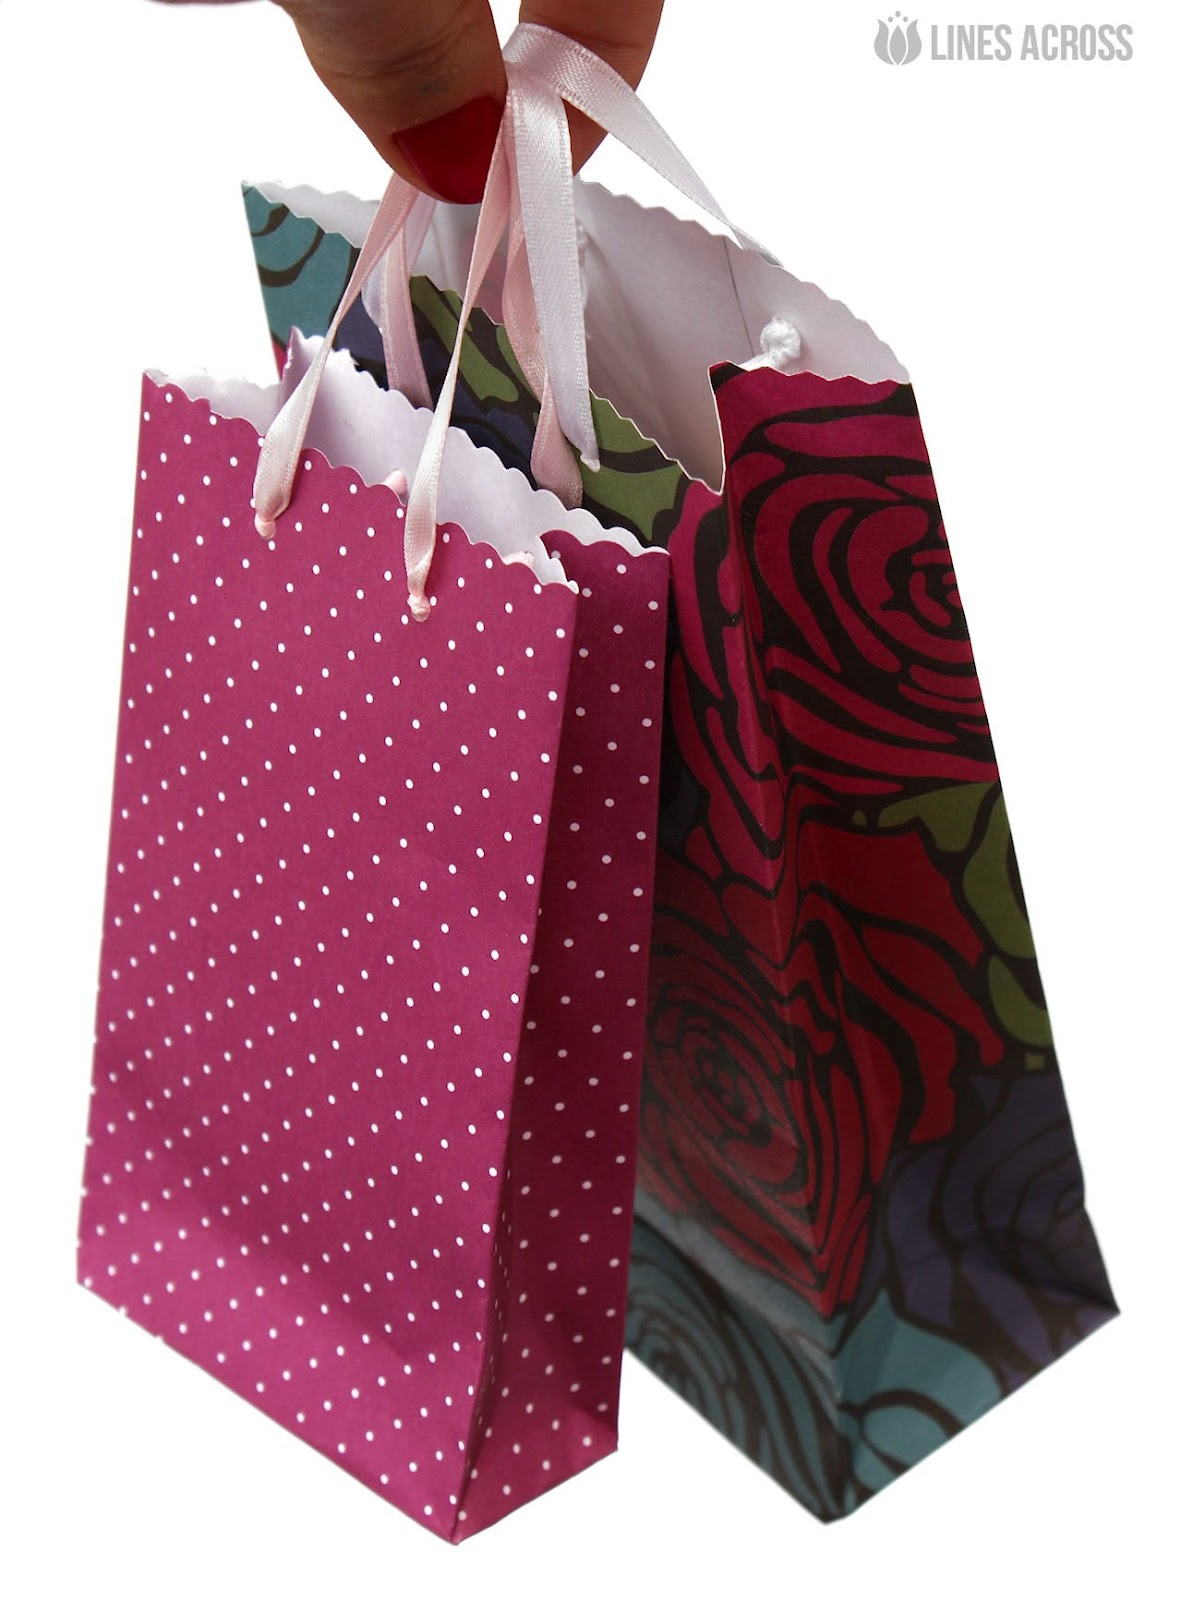 Paper Gift Bag Tutorial with Lines Across Inspiration